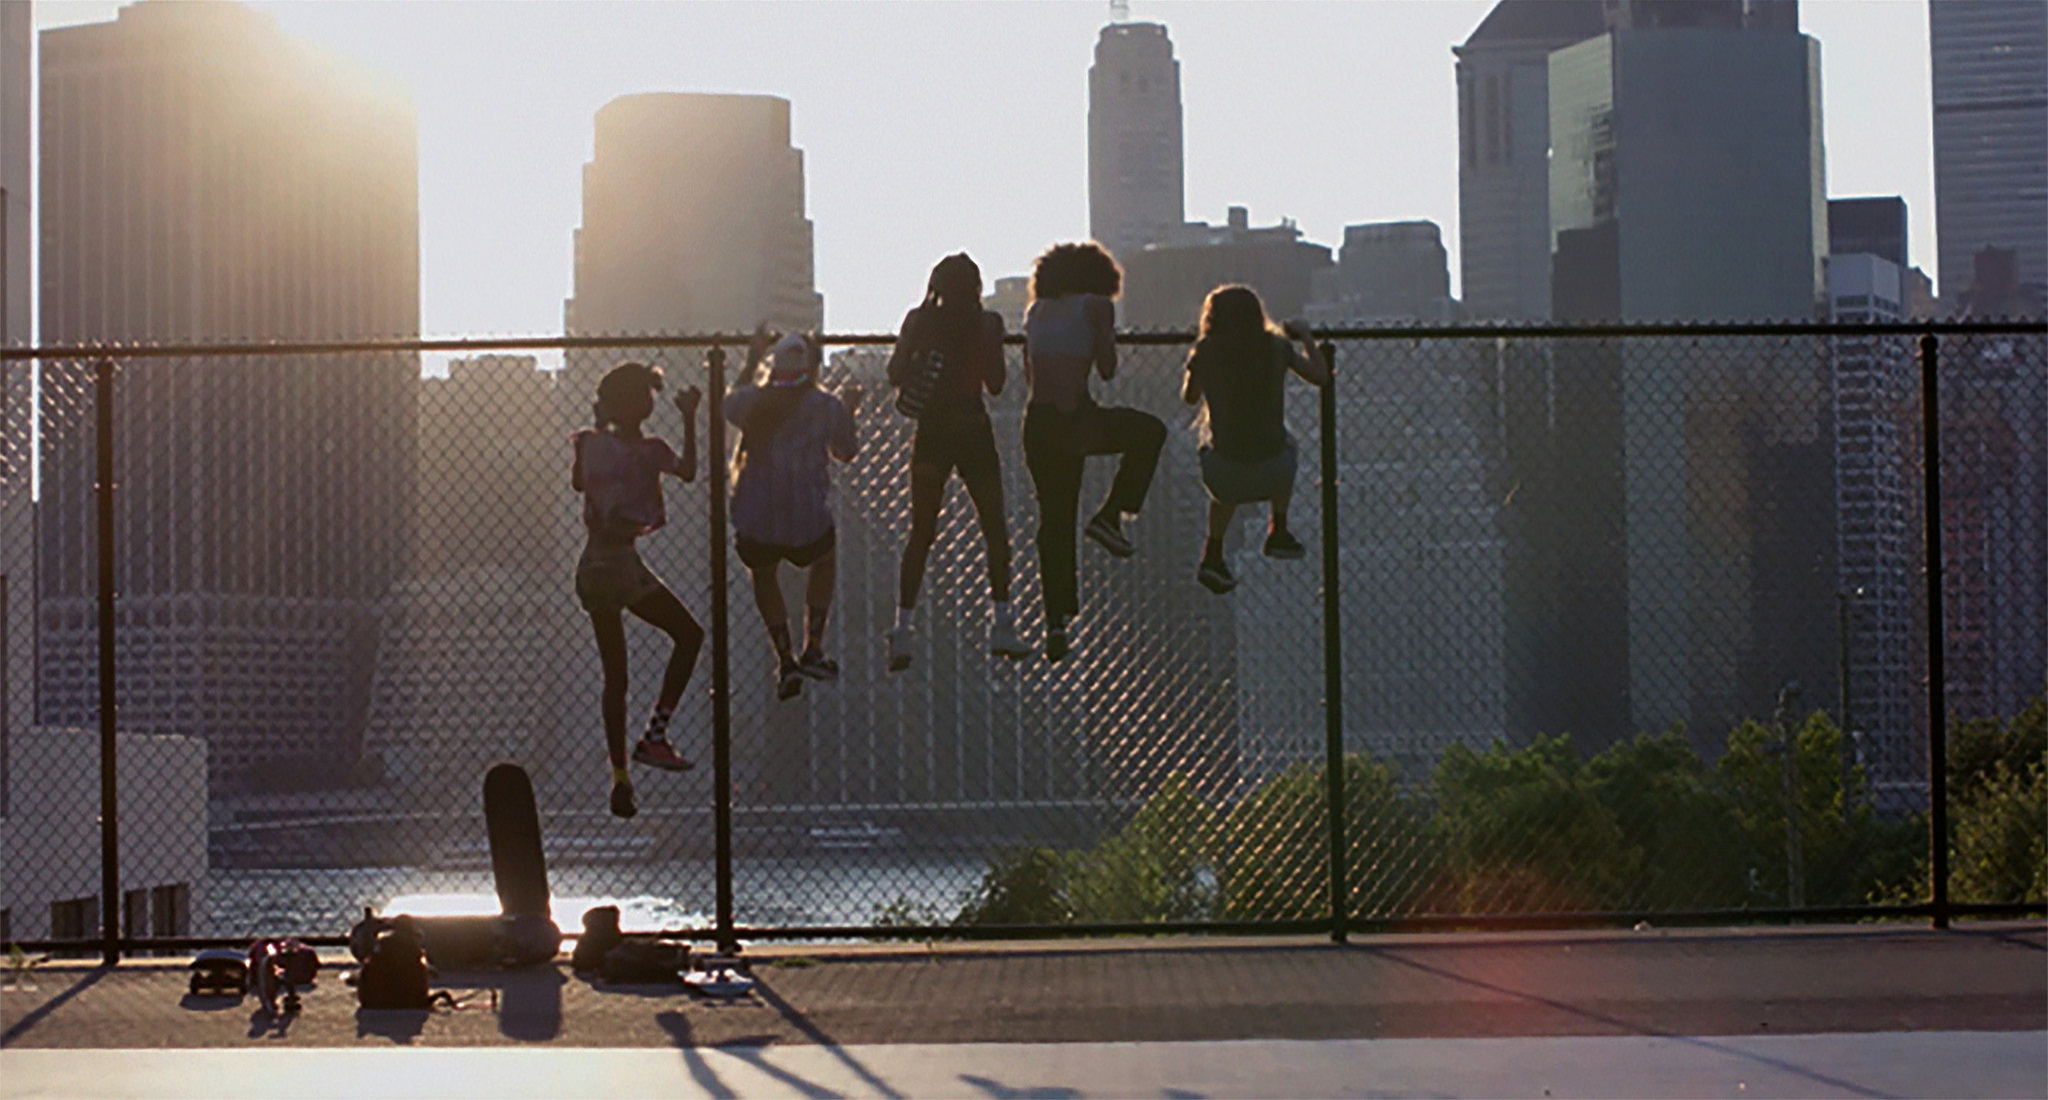 Five skaters scaling a fence in a city